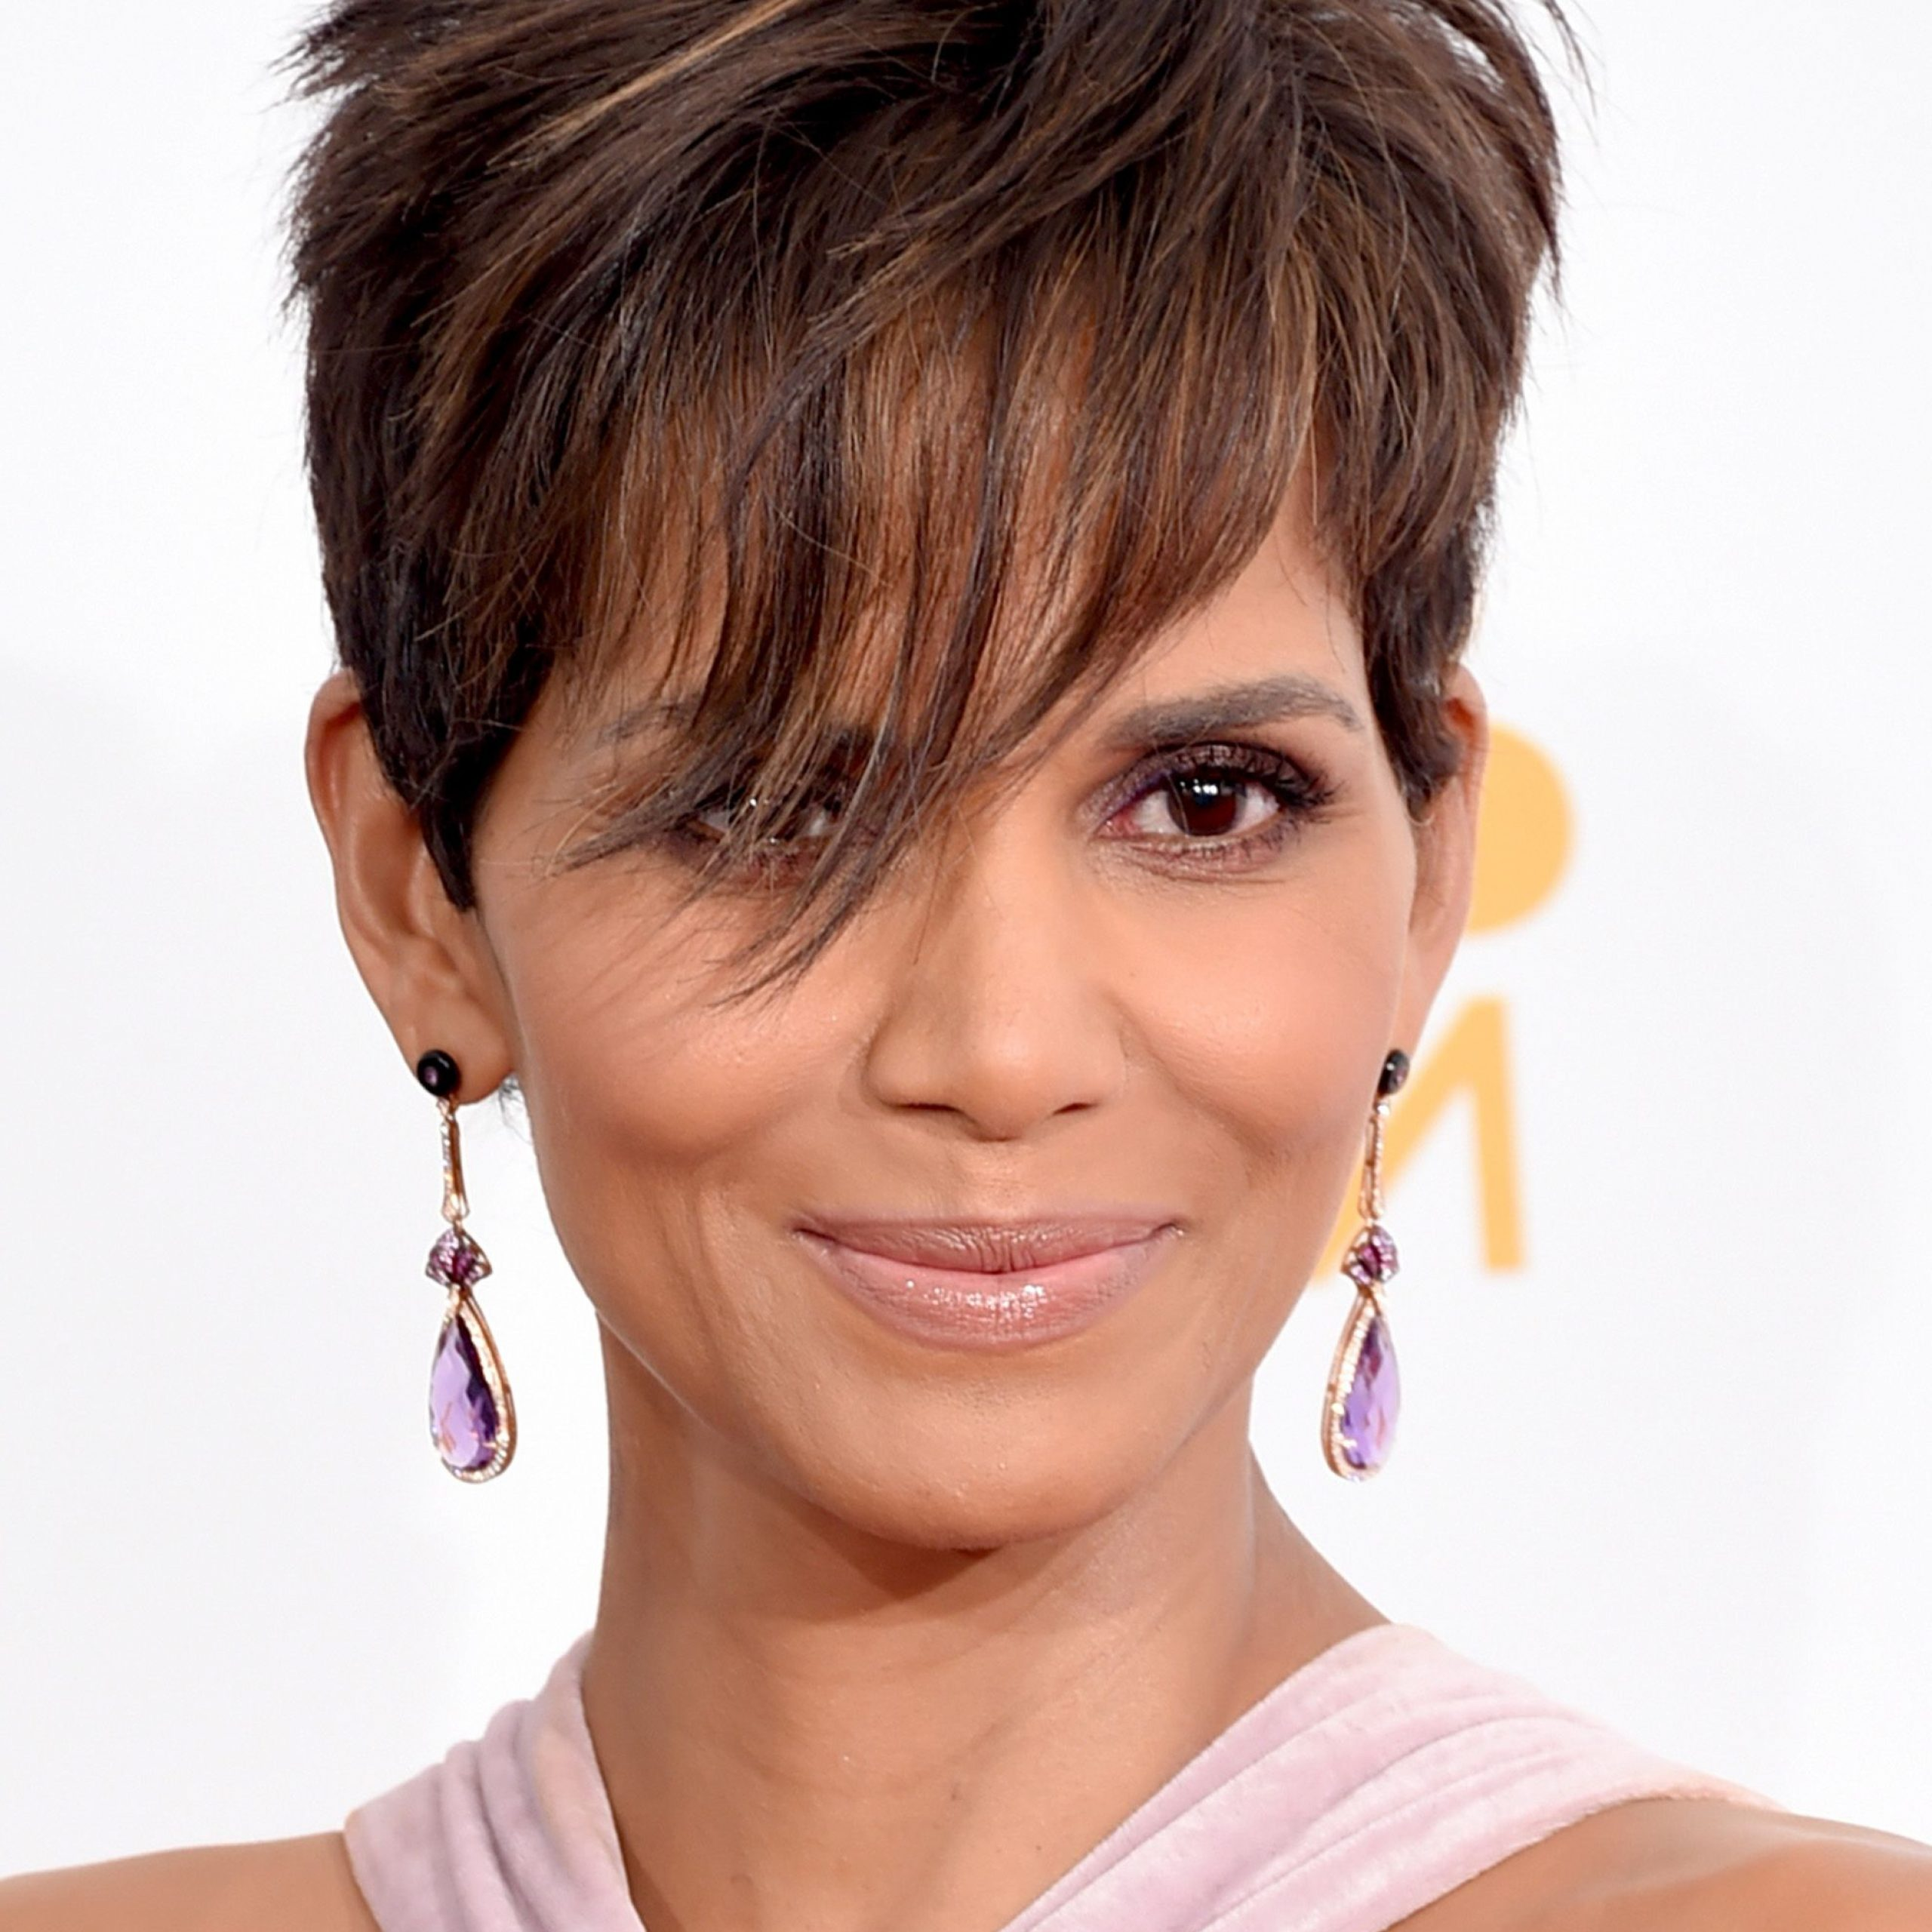 40 Best Short Pixie Cut Hairstyles 2019 – Cute Pixie With Gray Pixie Haircuts With Messy Crown (View 14 of 20)